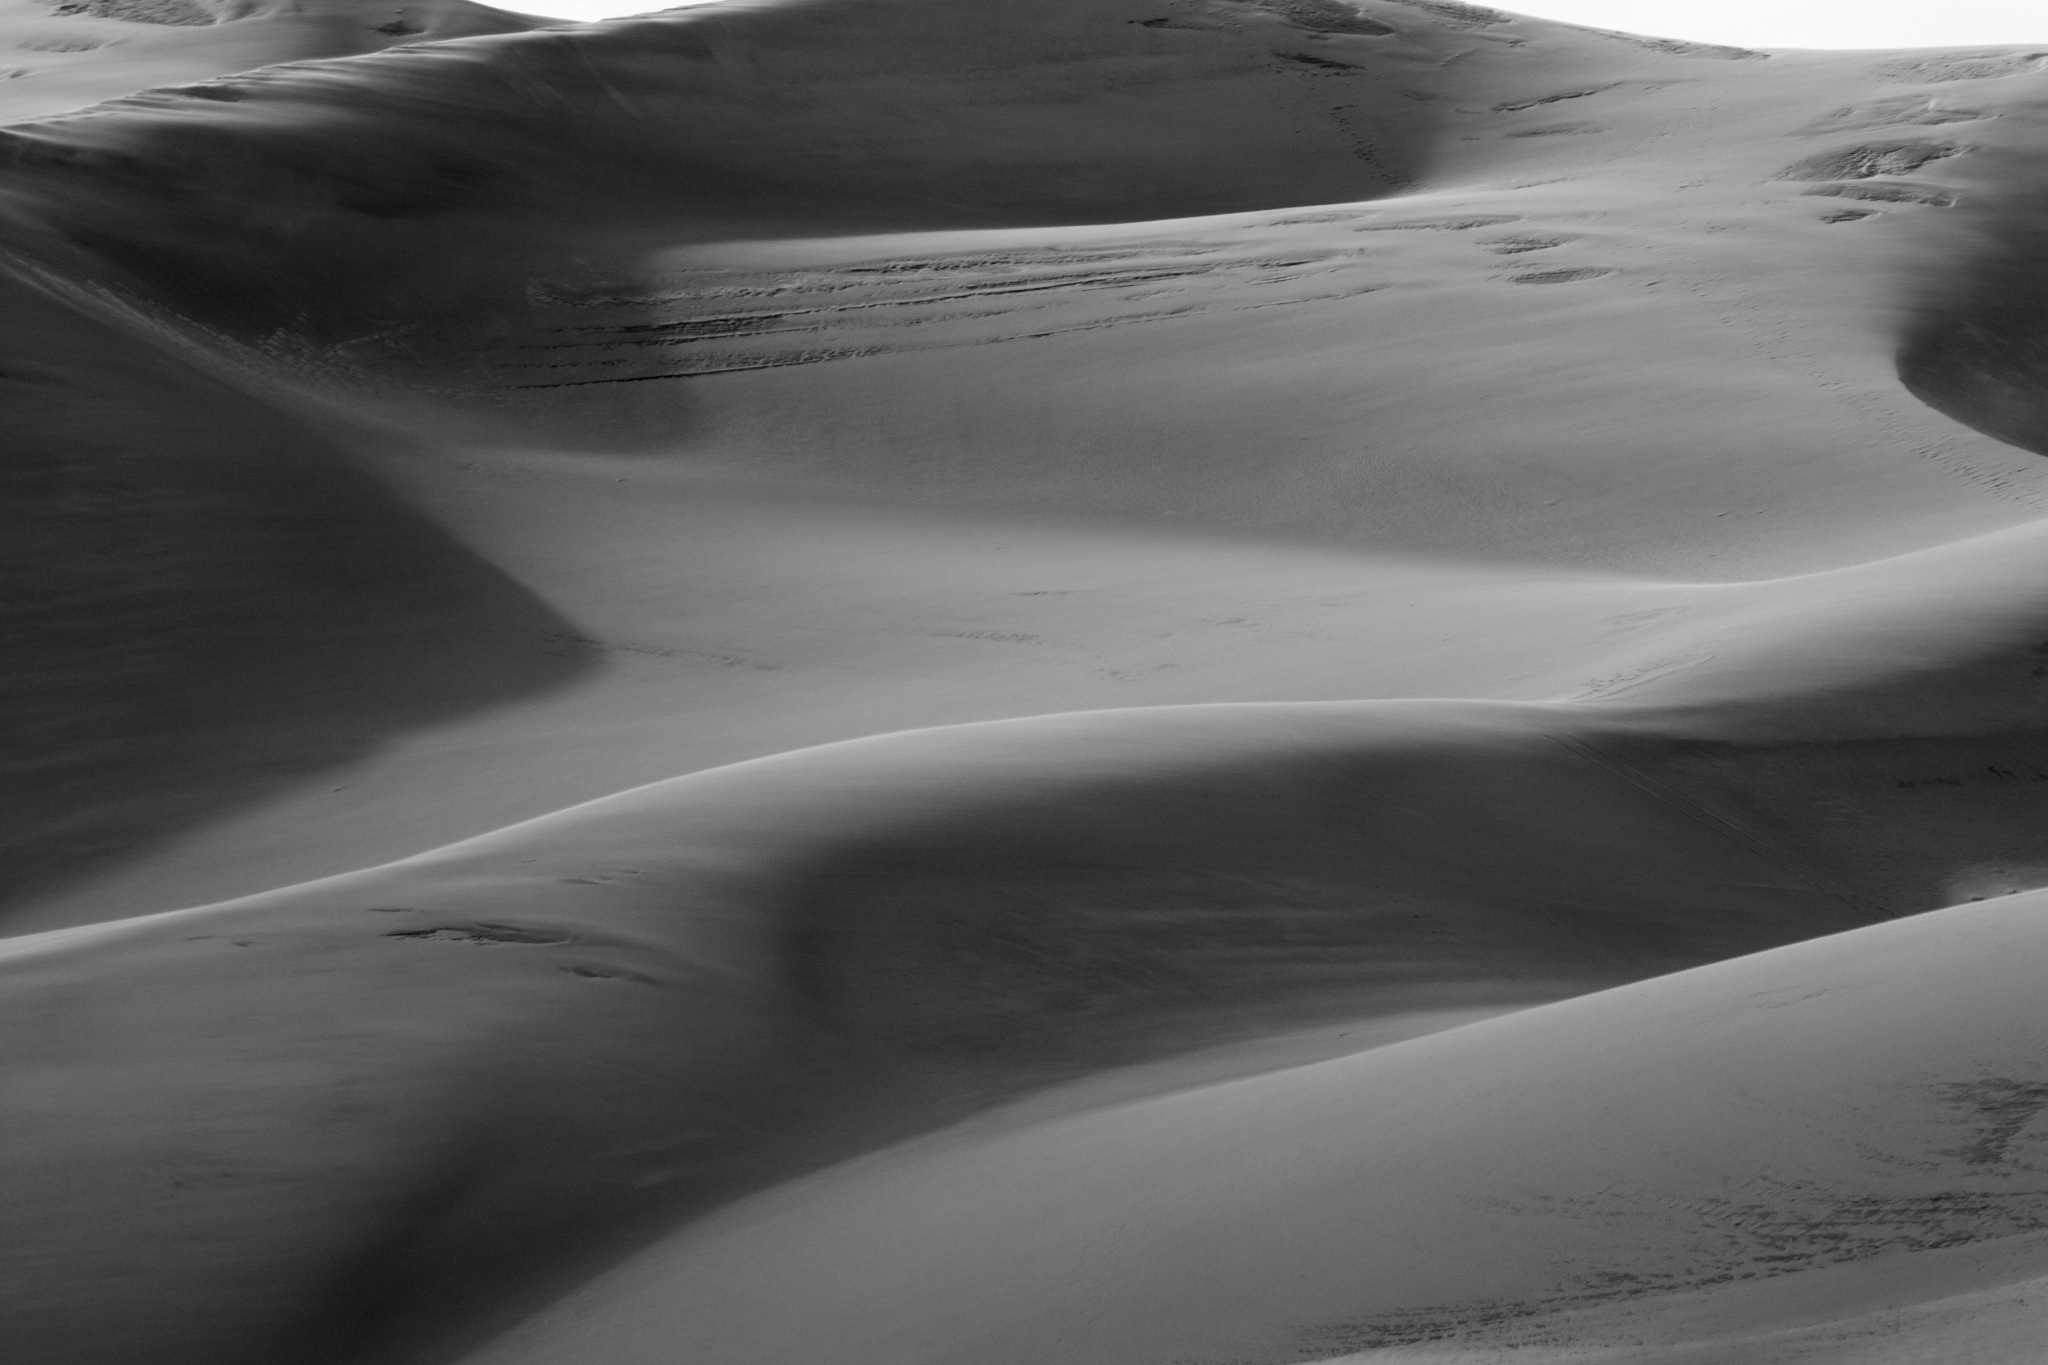 Shifting sands by ejk41